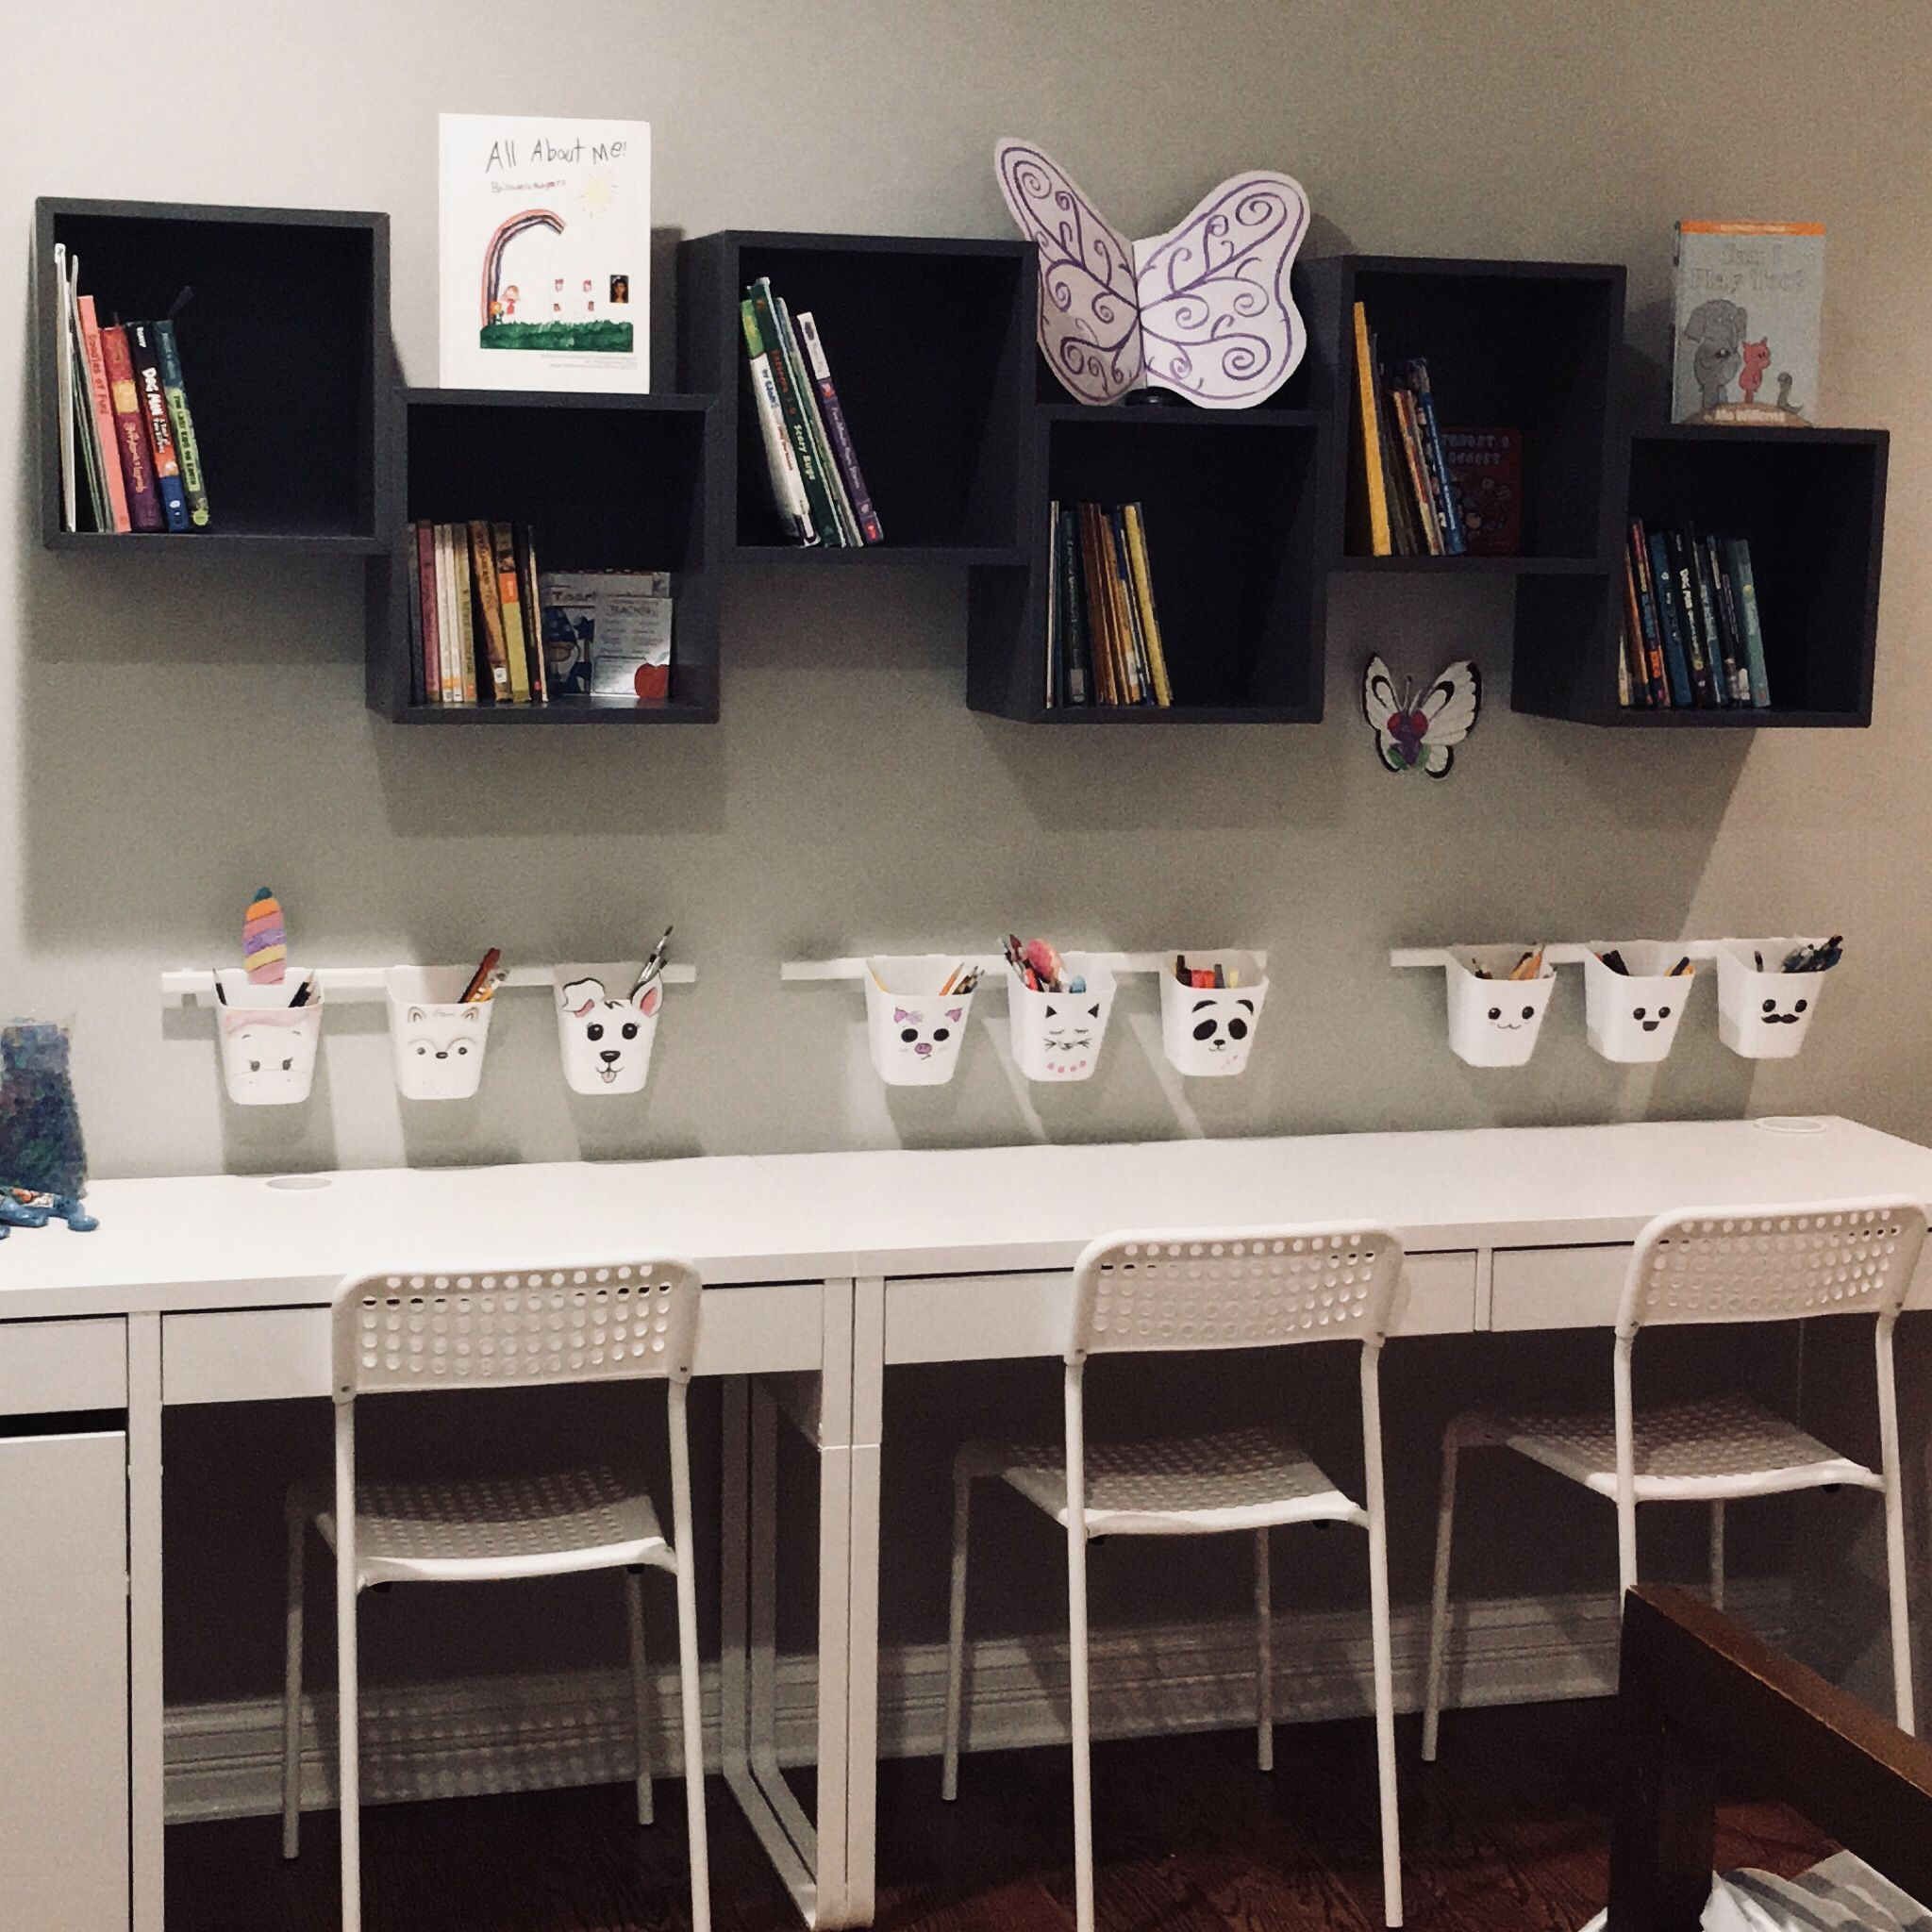 Ikea Kids Study Room: My Kids New Study Room! #homeworkstation #ikea #eket #kids